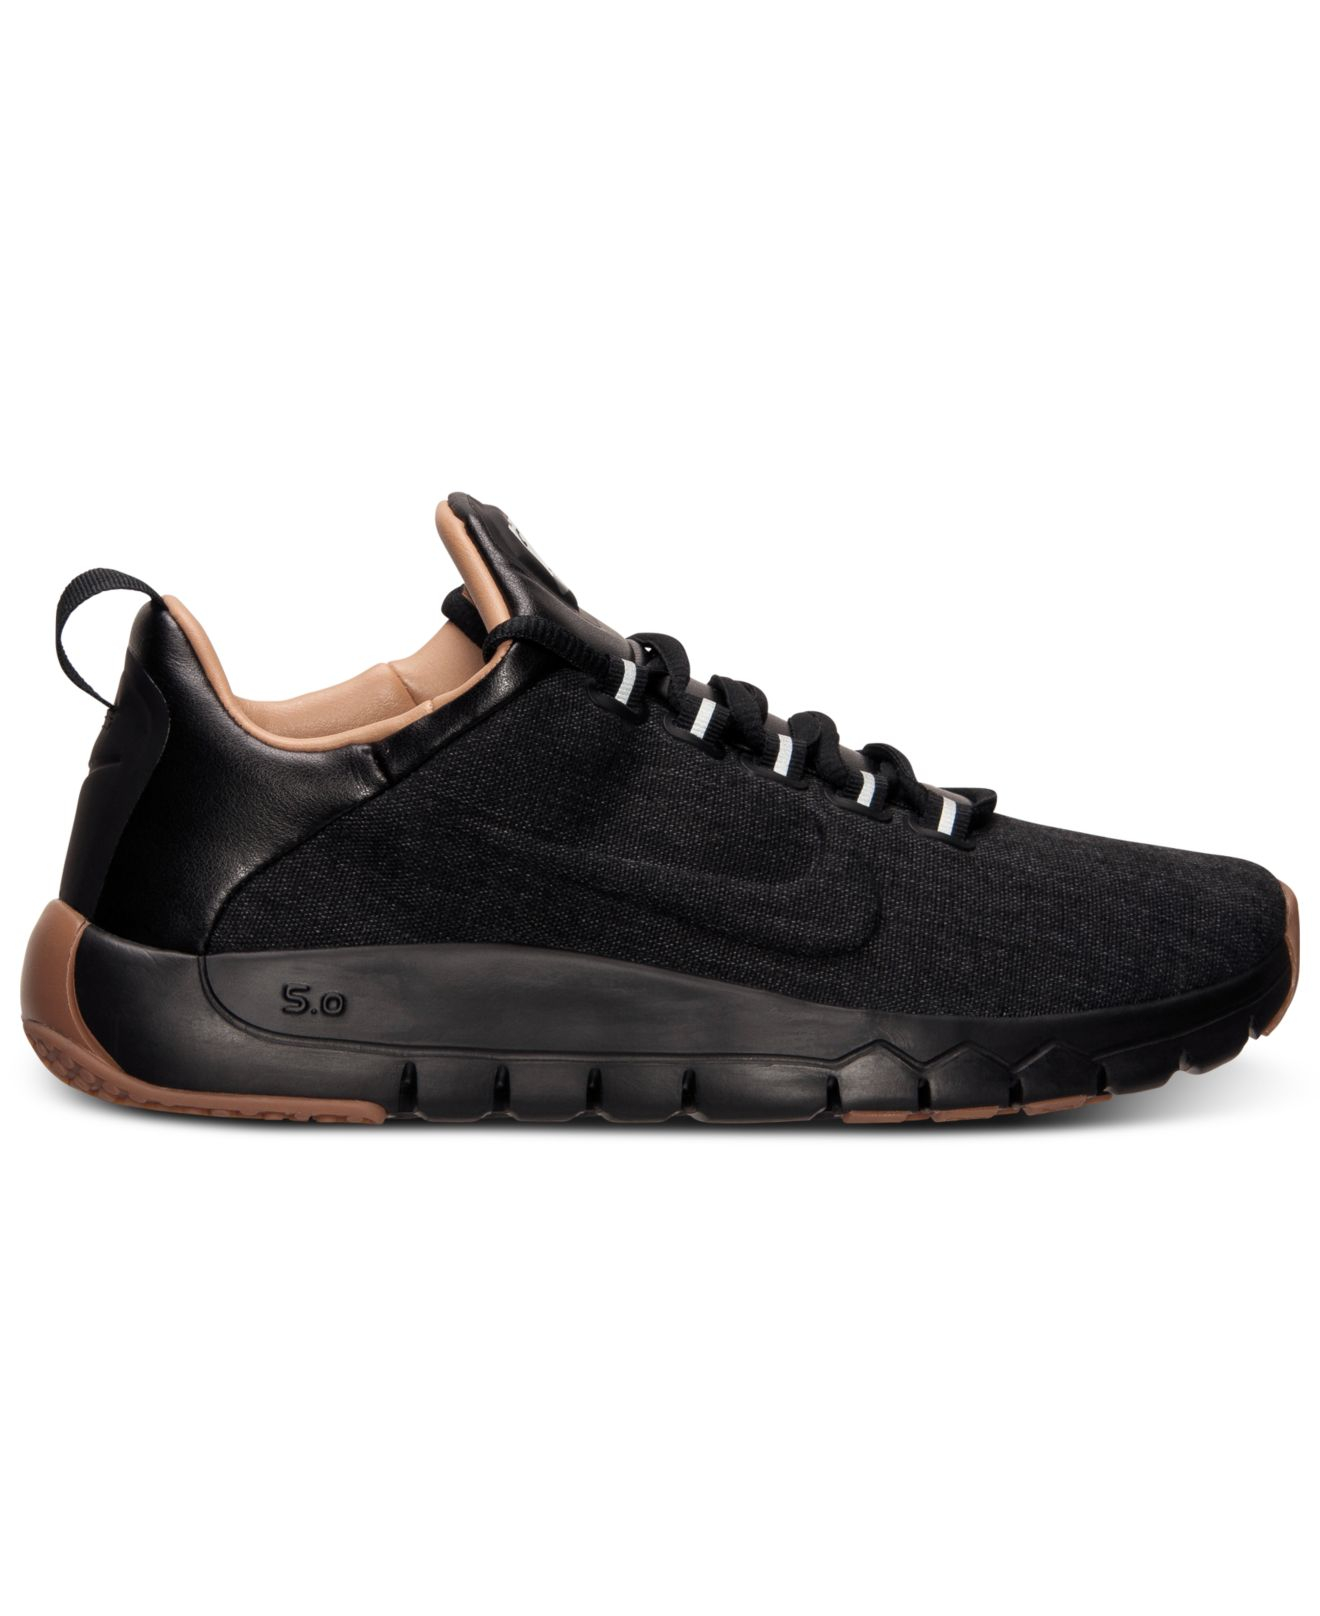 1a1cbae5303 Finish Line Nike Free Trainer 5.0